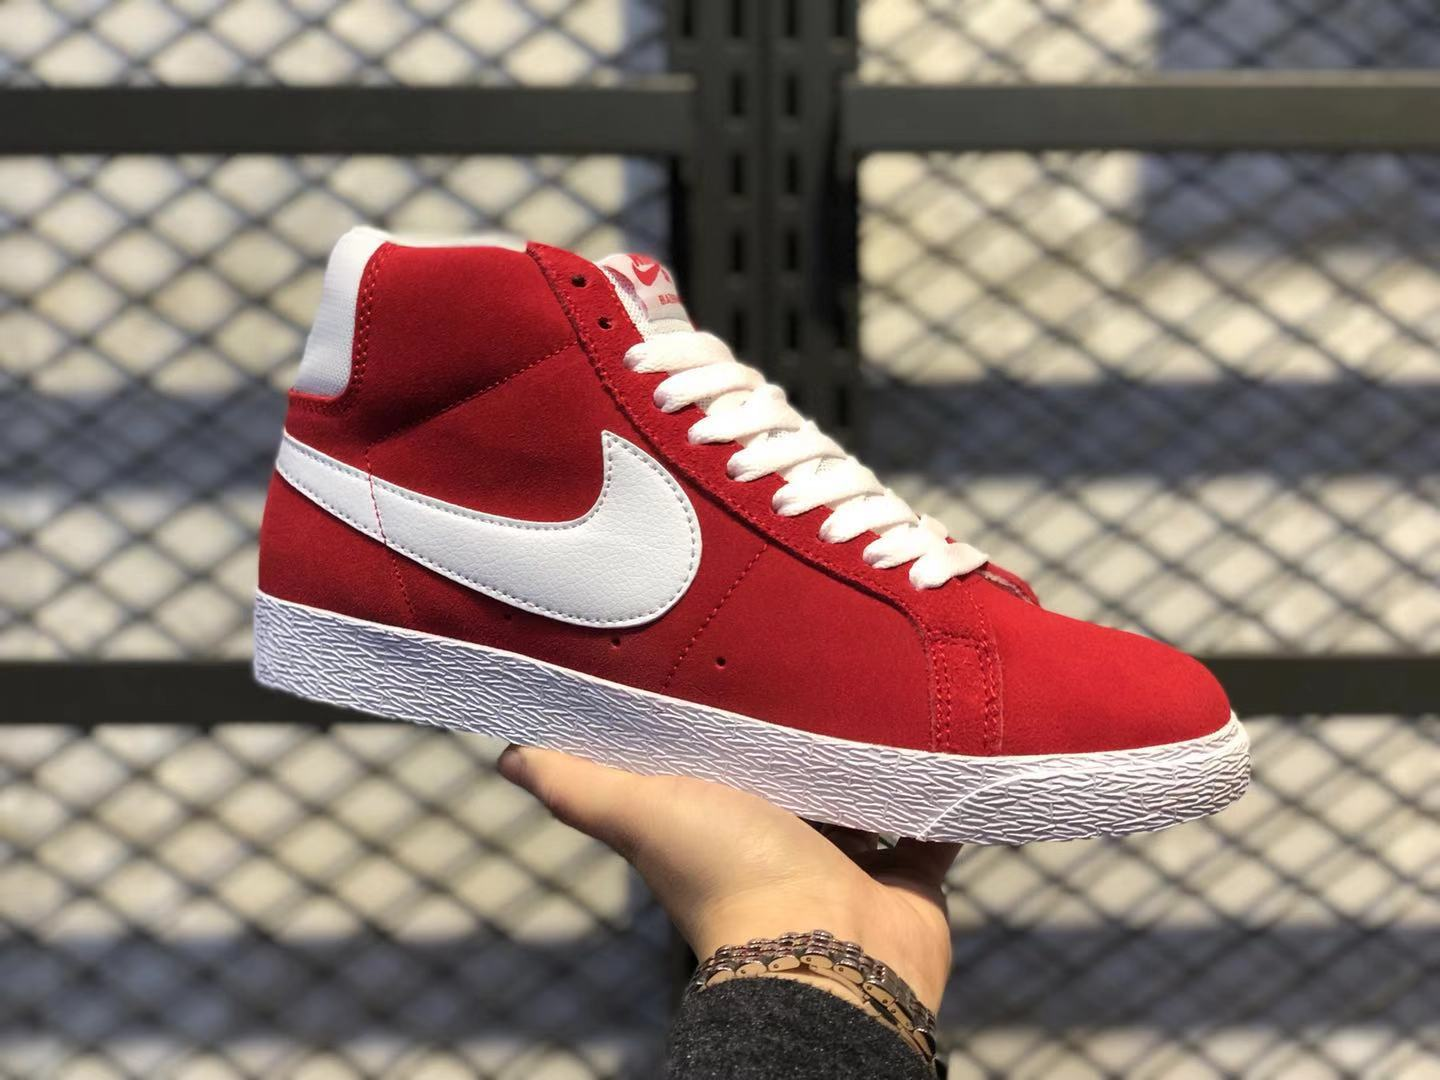 Nike SB Blazer Mid Retro University Red/White Suede Shoes 864349-611 For Sale